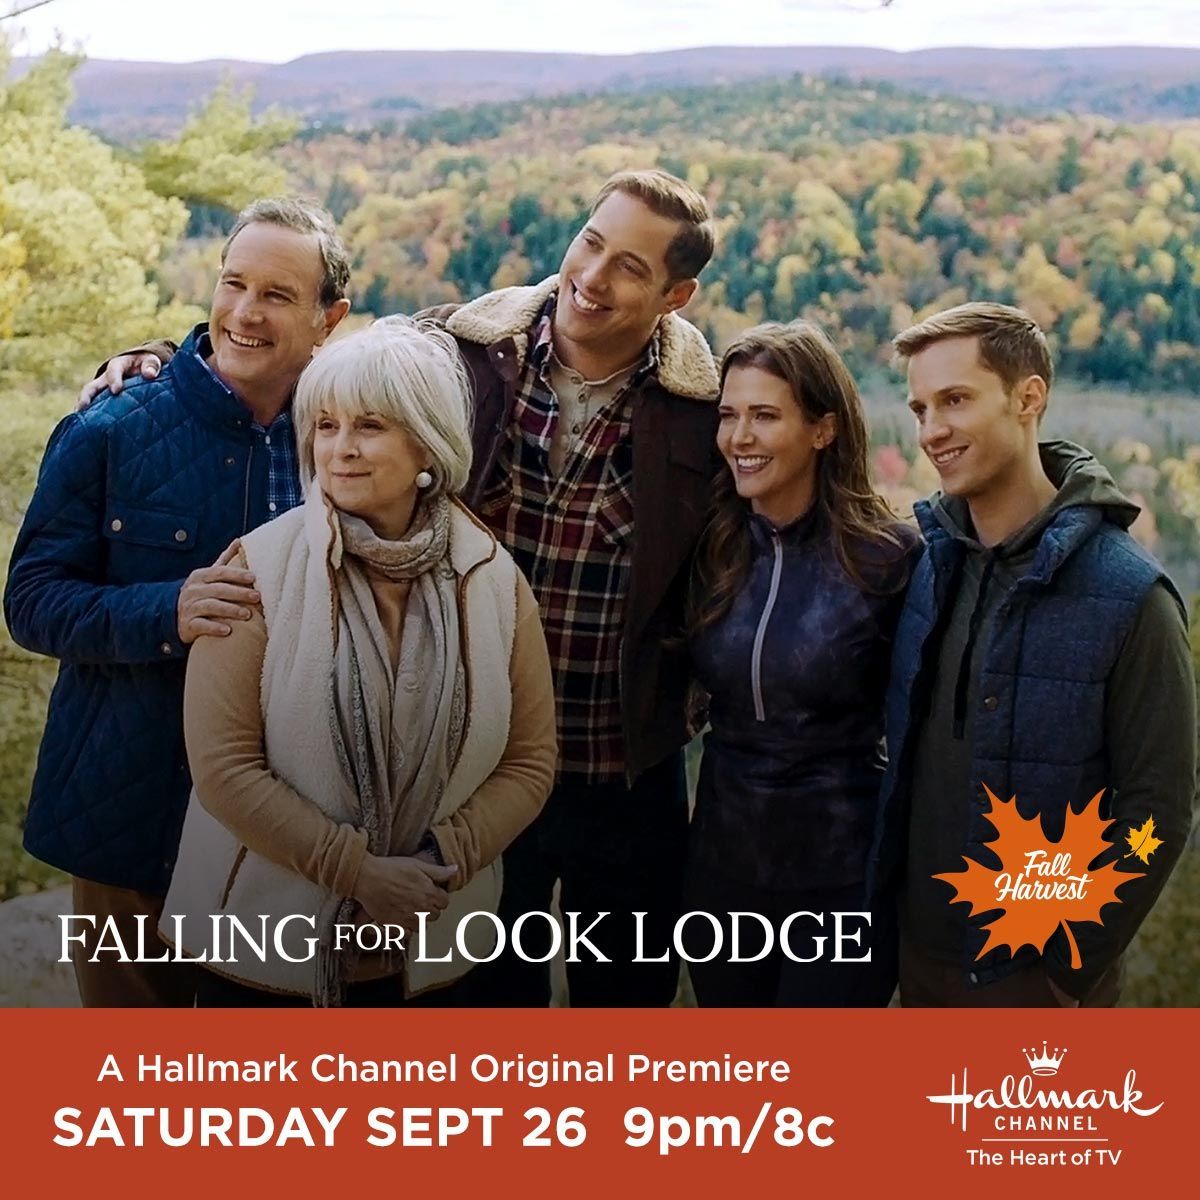 Check Out Our Fall Harvest Bucket List For Great Seasonal Suggestions Like Taking A Hike With The Family And Th Hallmark Channel The Fall Movie Movie Premiere